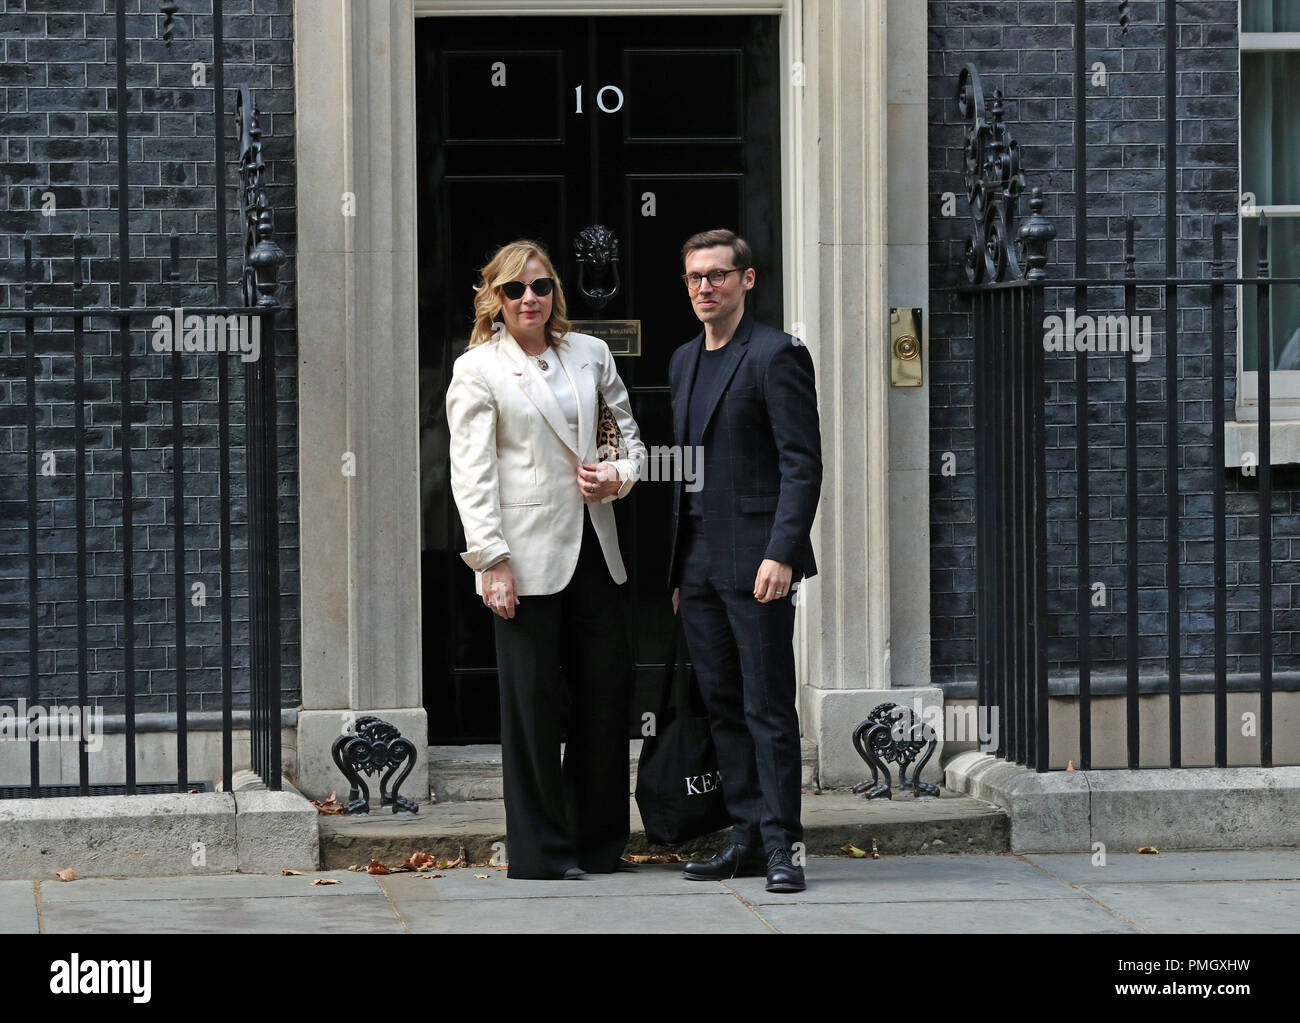 Erdem Moralioglu (right), arriving at Downing Street, central London to attend a reception hosted by Prime Minister Theresa May to mark the end of London Fashion Week. - Stock Image